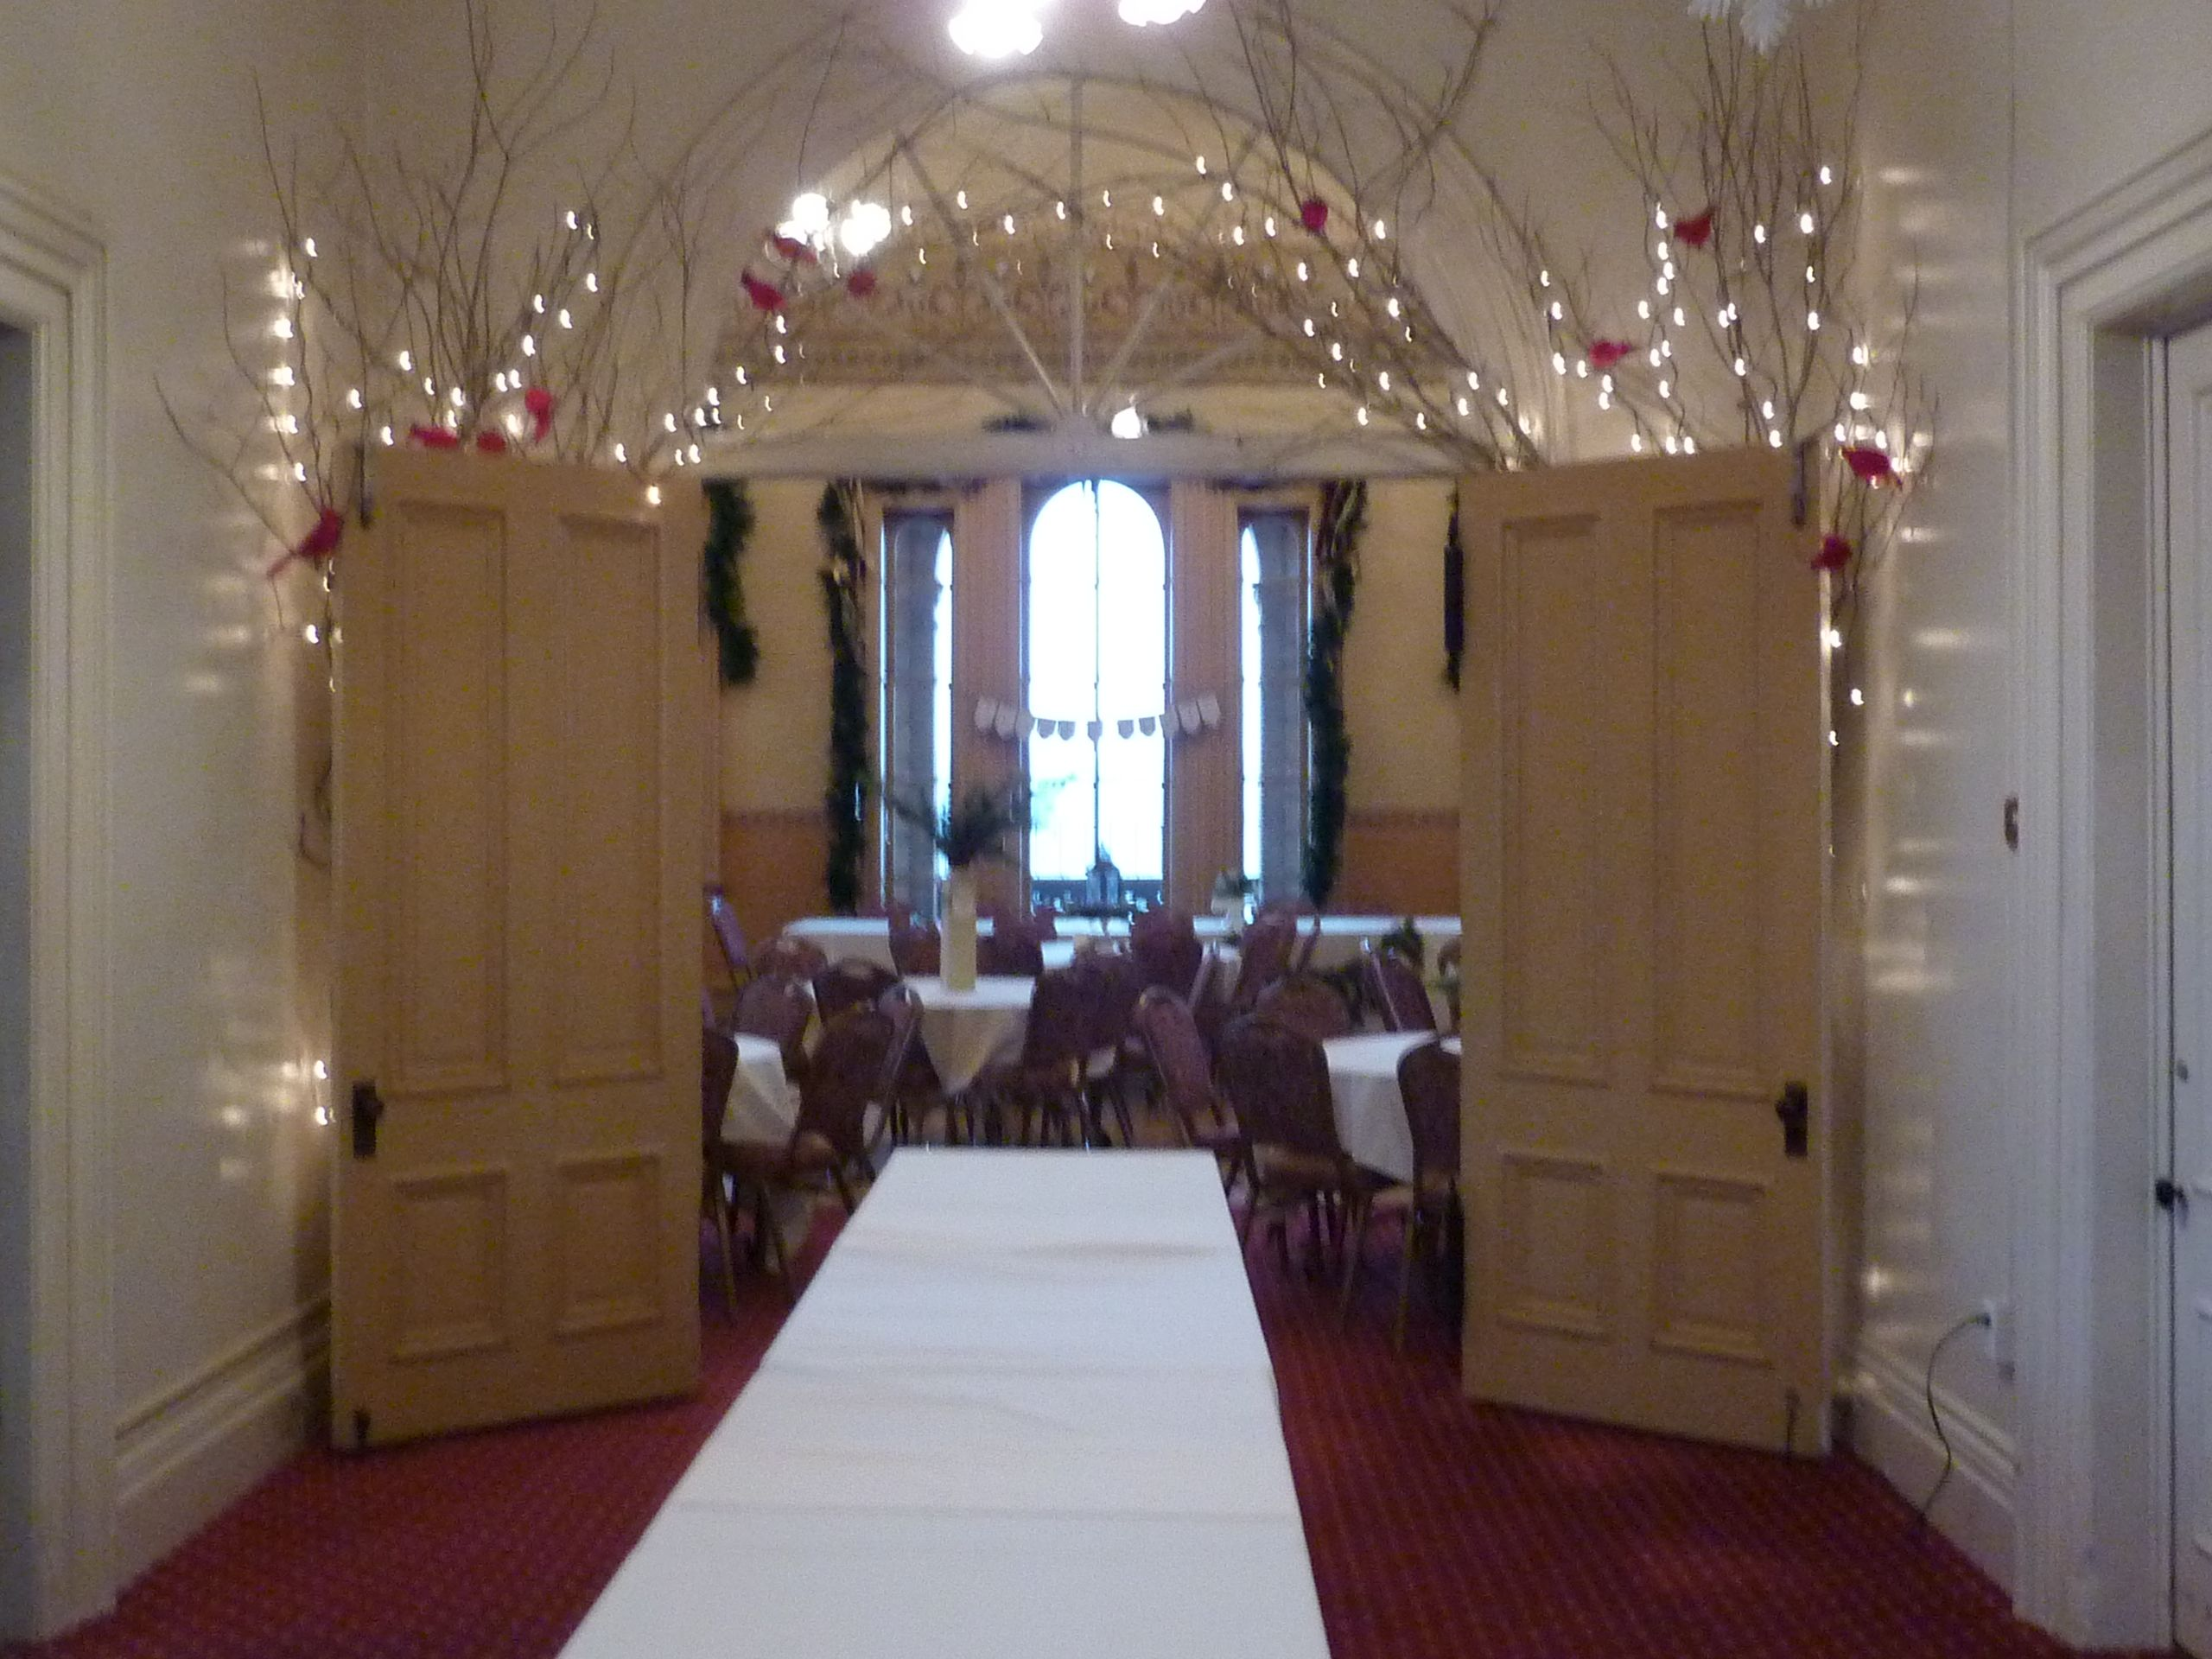 wedding reception restaurants mn%0A Winter decorations for a Christmas wedding at the Washington County  Historic Courthouse in Stillwater  MN